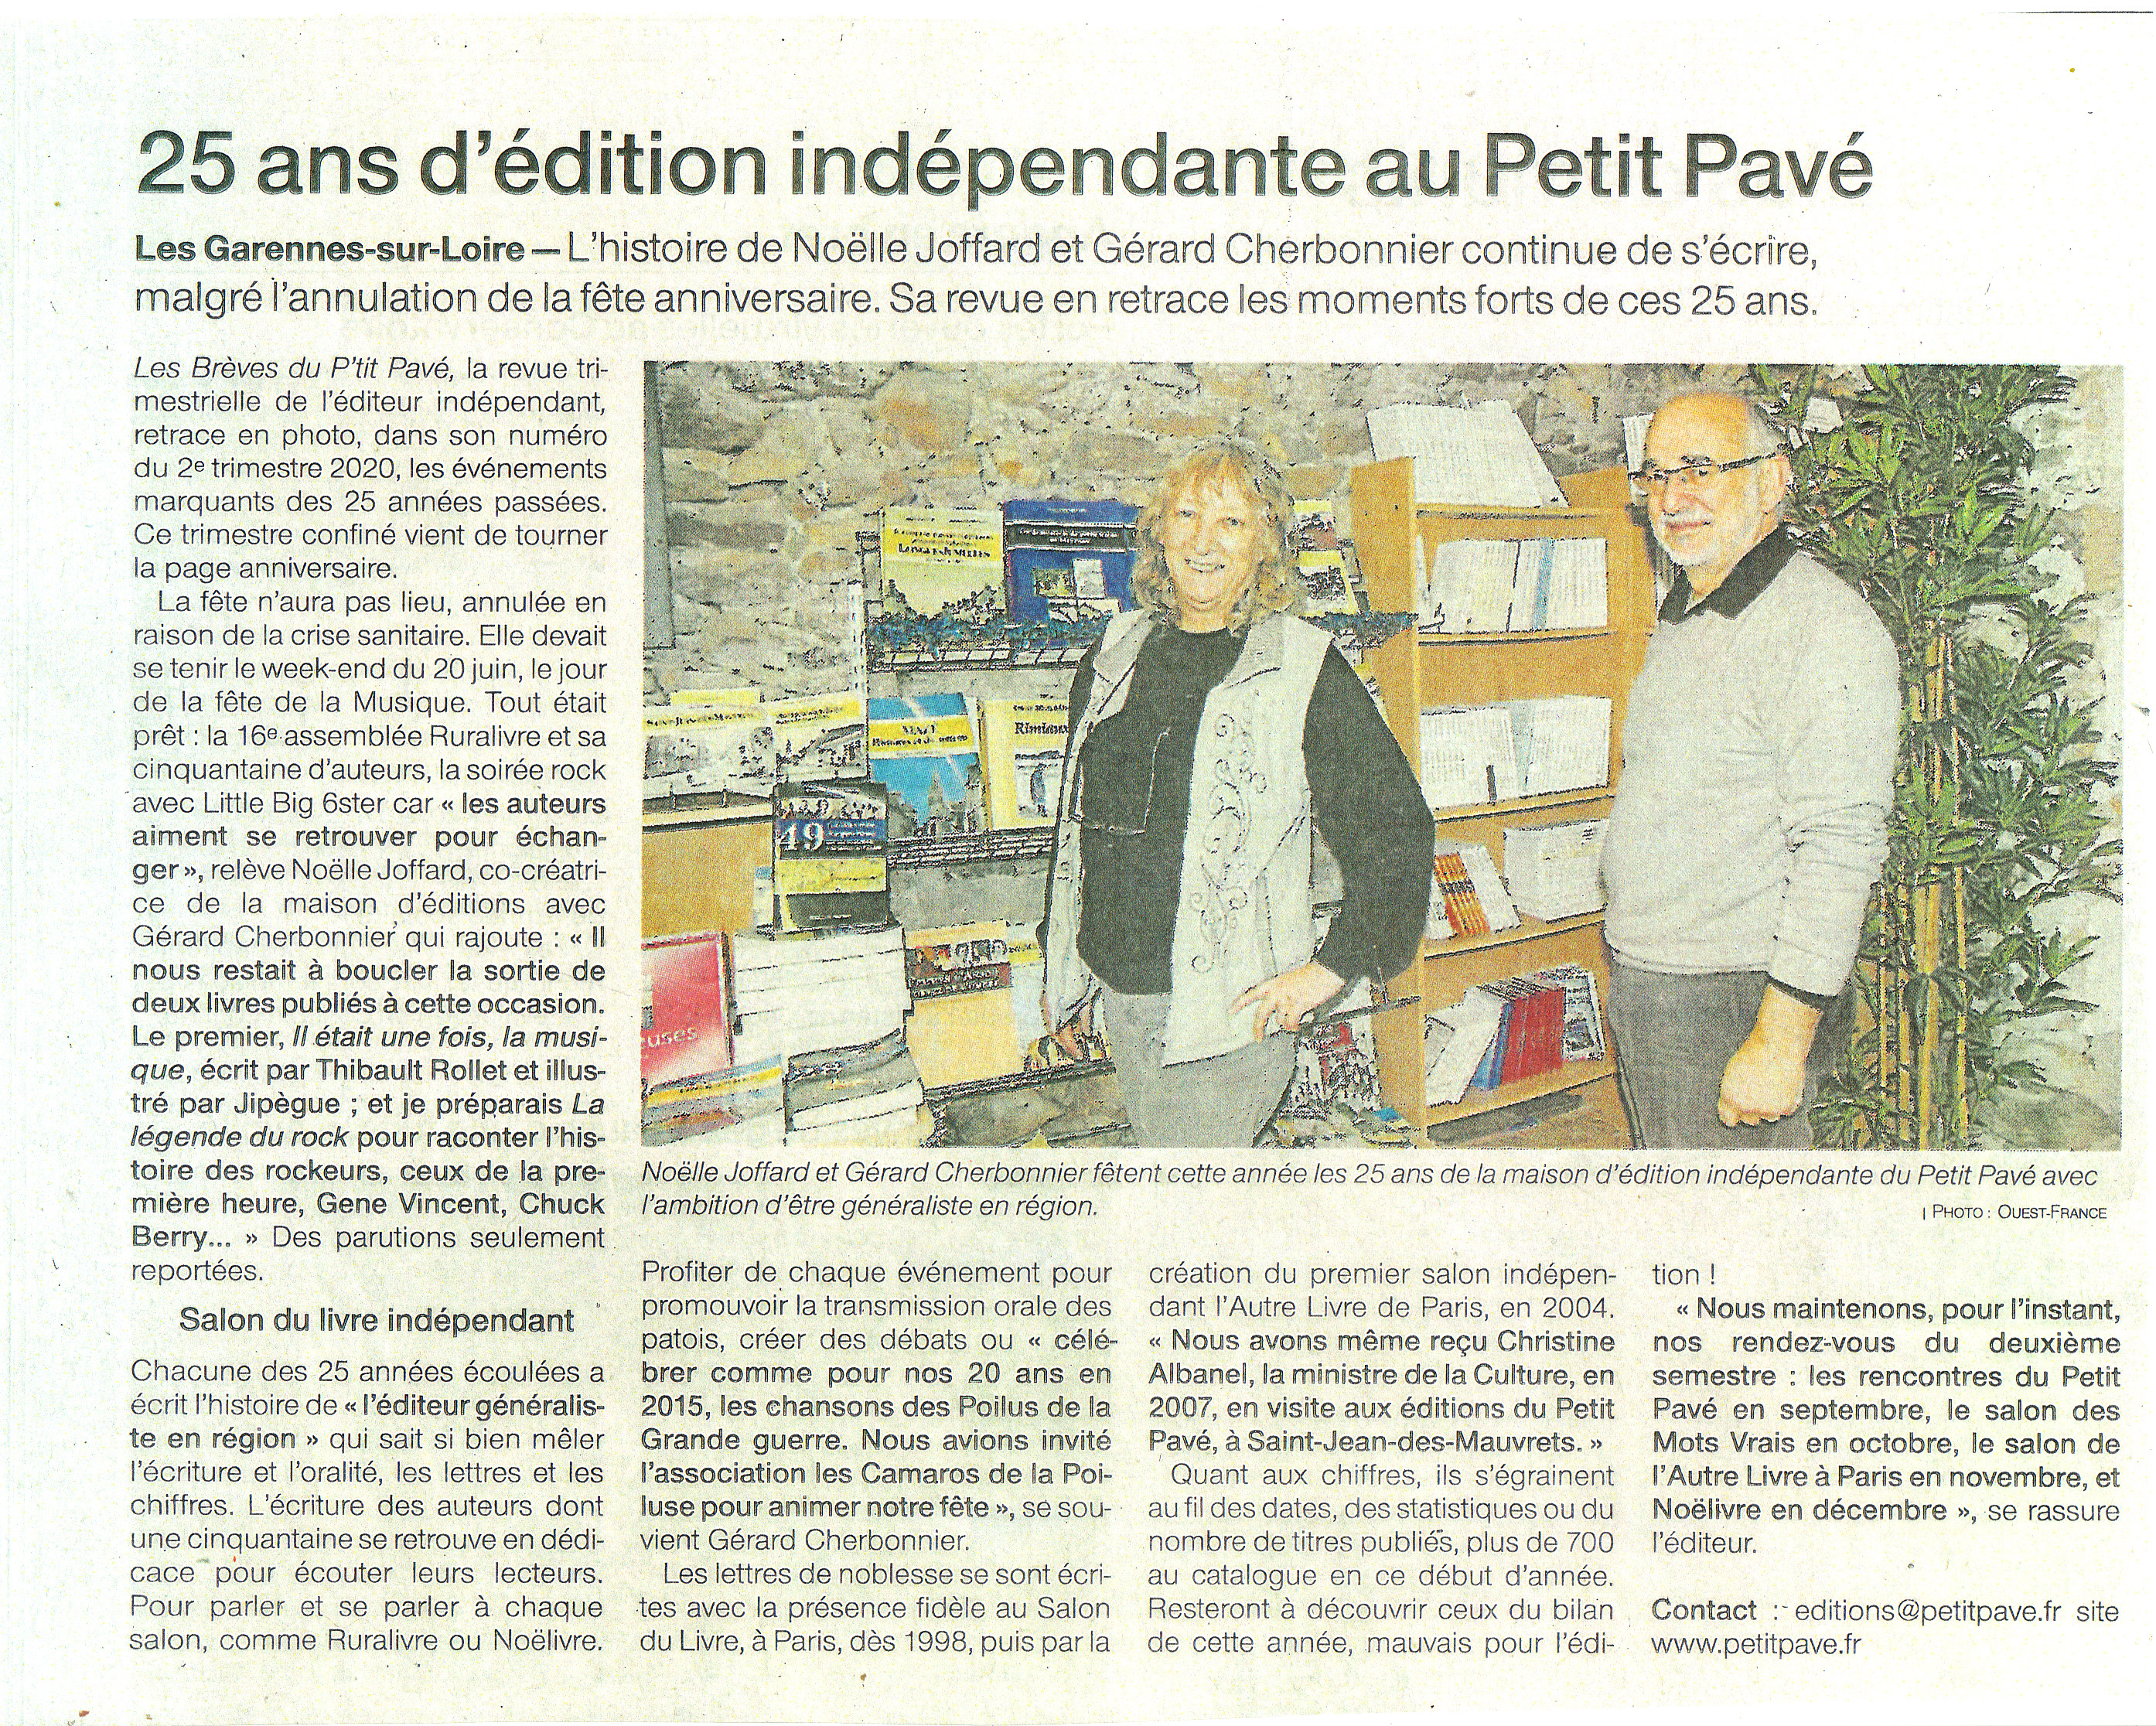 25 ans d'�dition ind�pendante au Petit Pav� - Photo 25ans_edt_independante.jpg